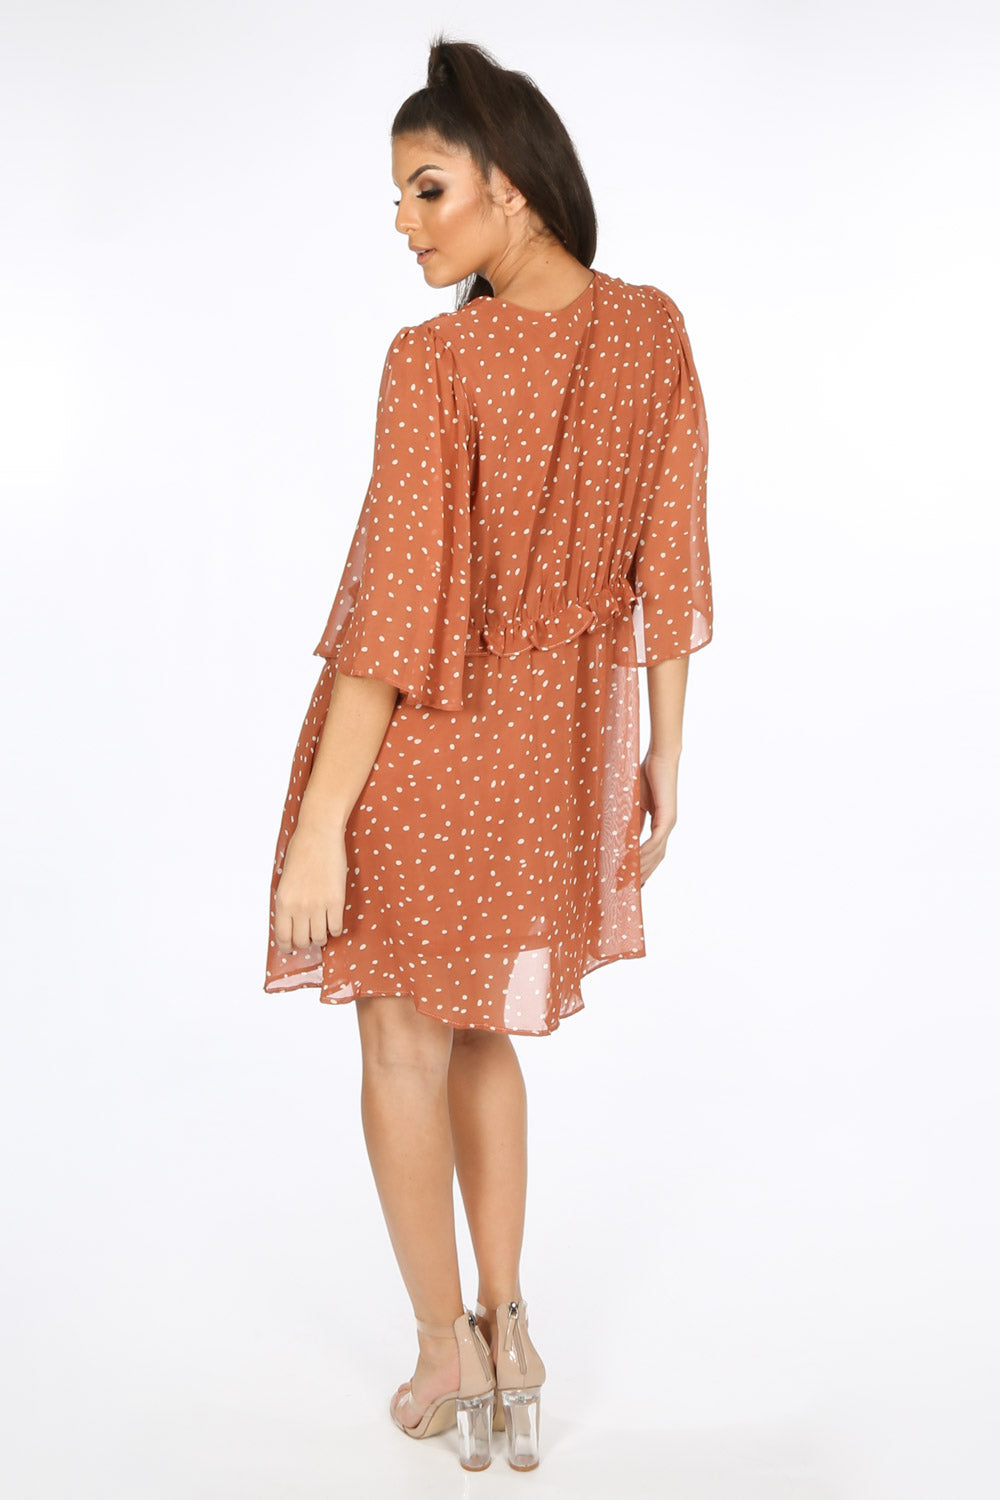 Tan Polka Dot Chiffon Smock Dress